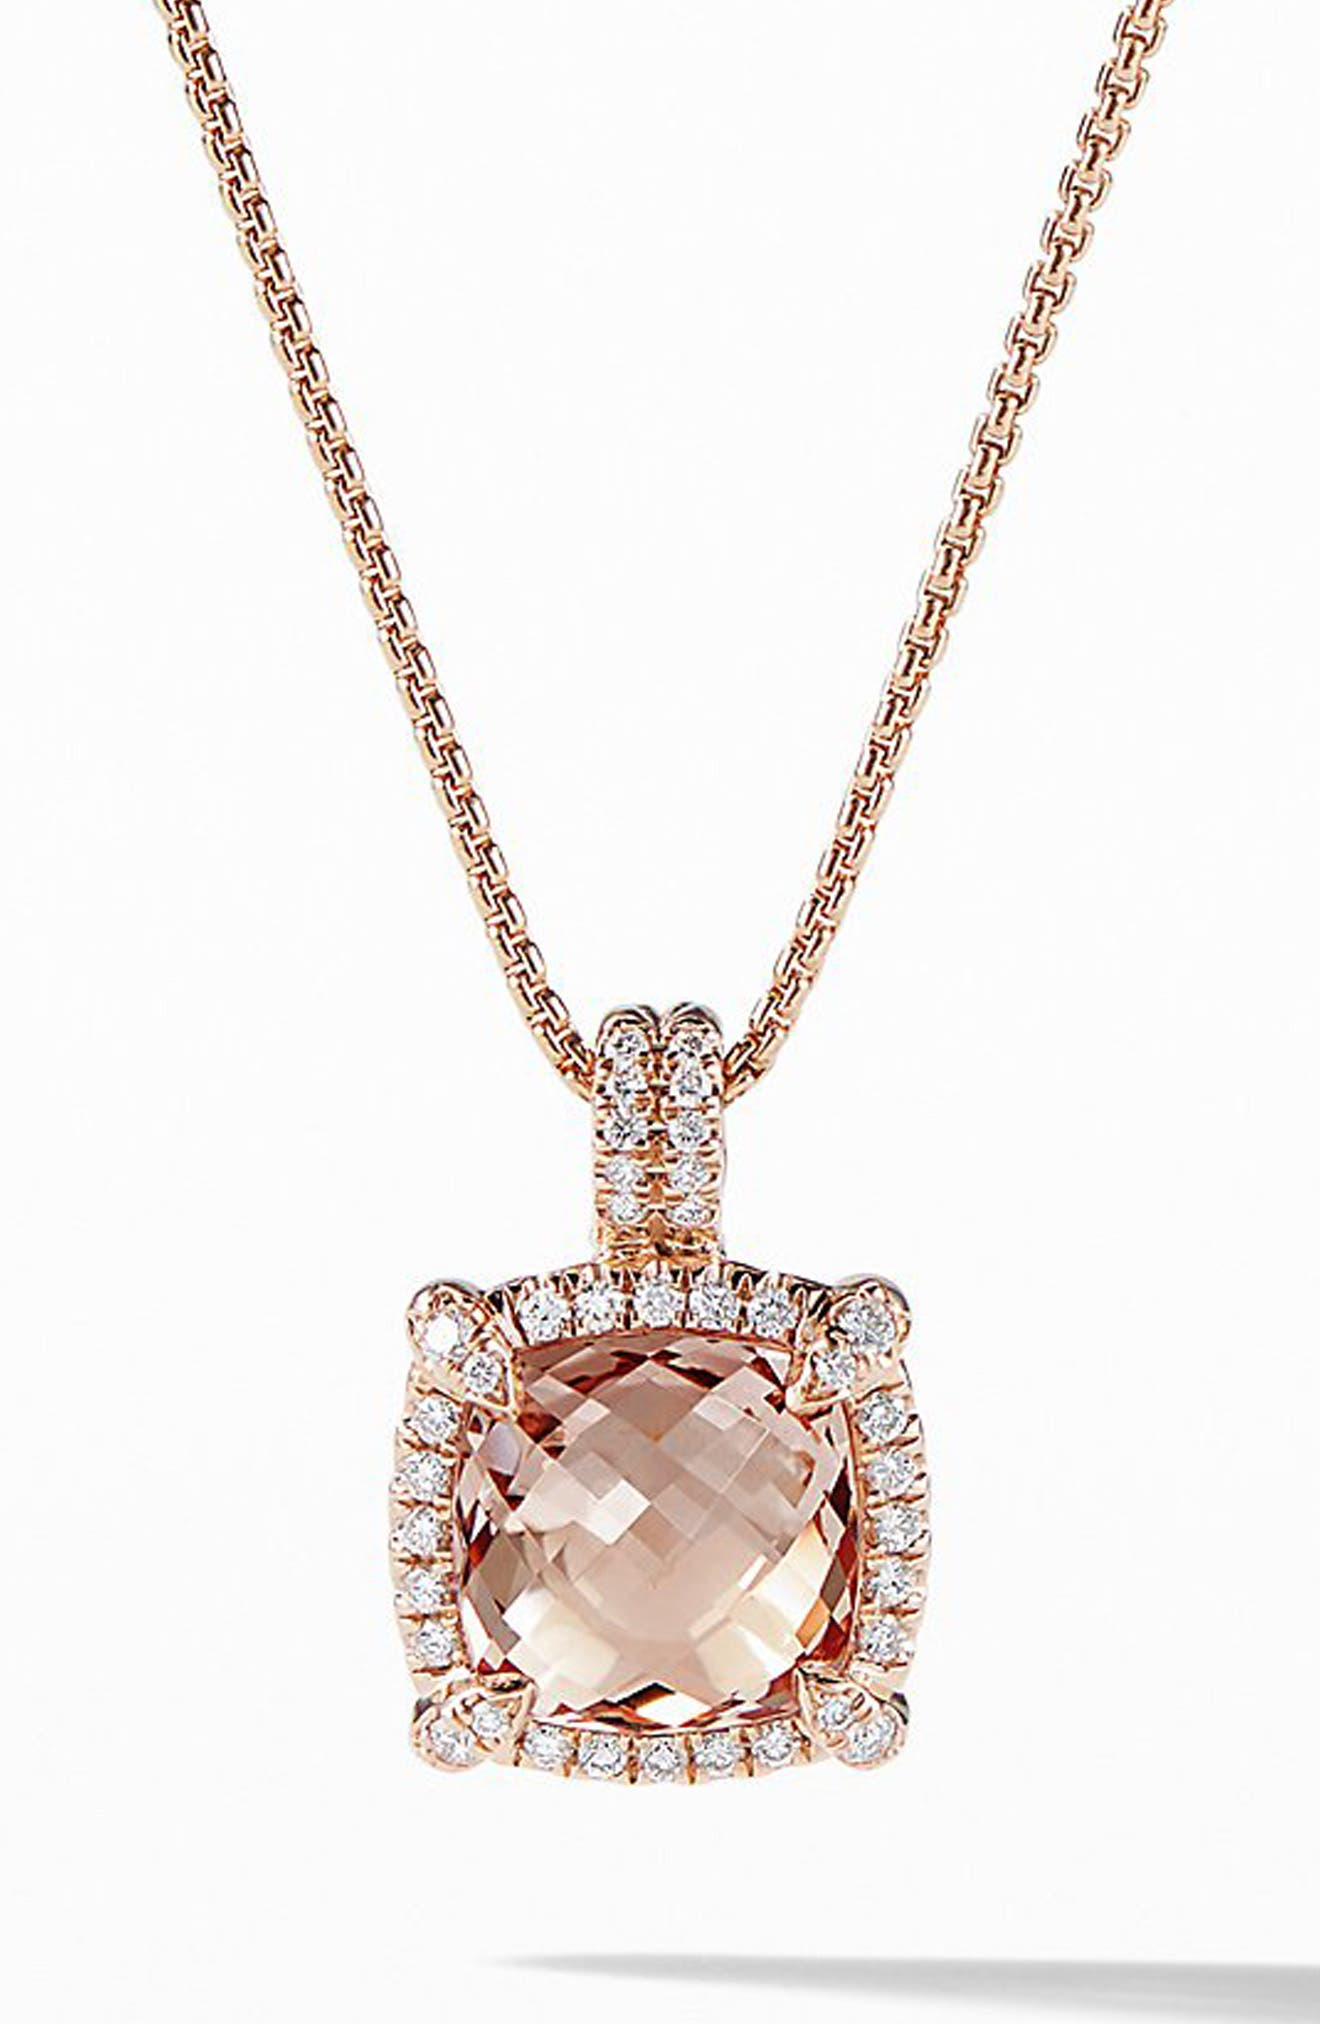 Châtelaine Pavé Bezel Pendant Necklace with Morganite and Diamonds in 18K Rose Gold,                             Main thumbnail 1, color,                             ROSE GOLD/ DIAMOND/ MORGANITE